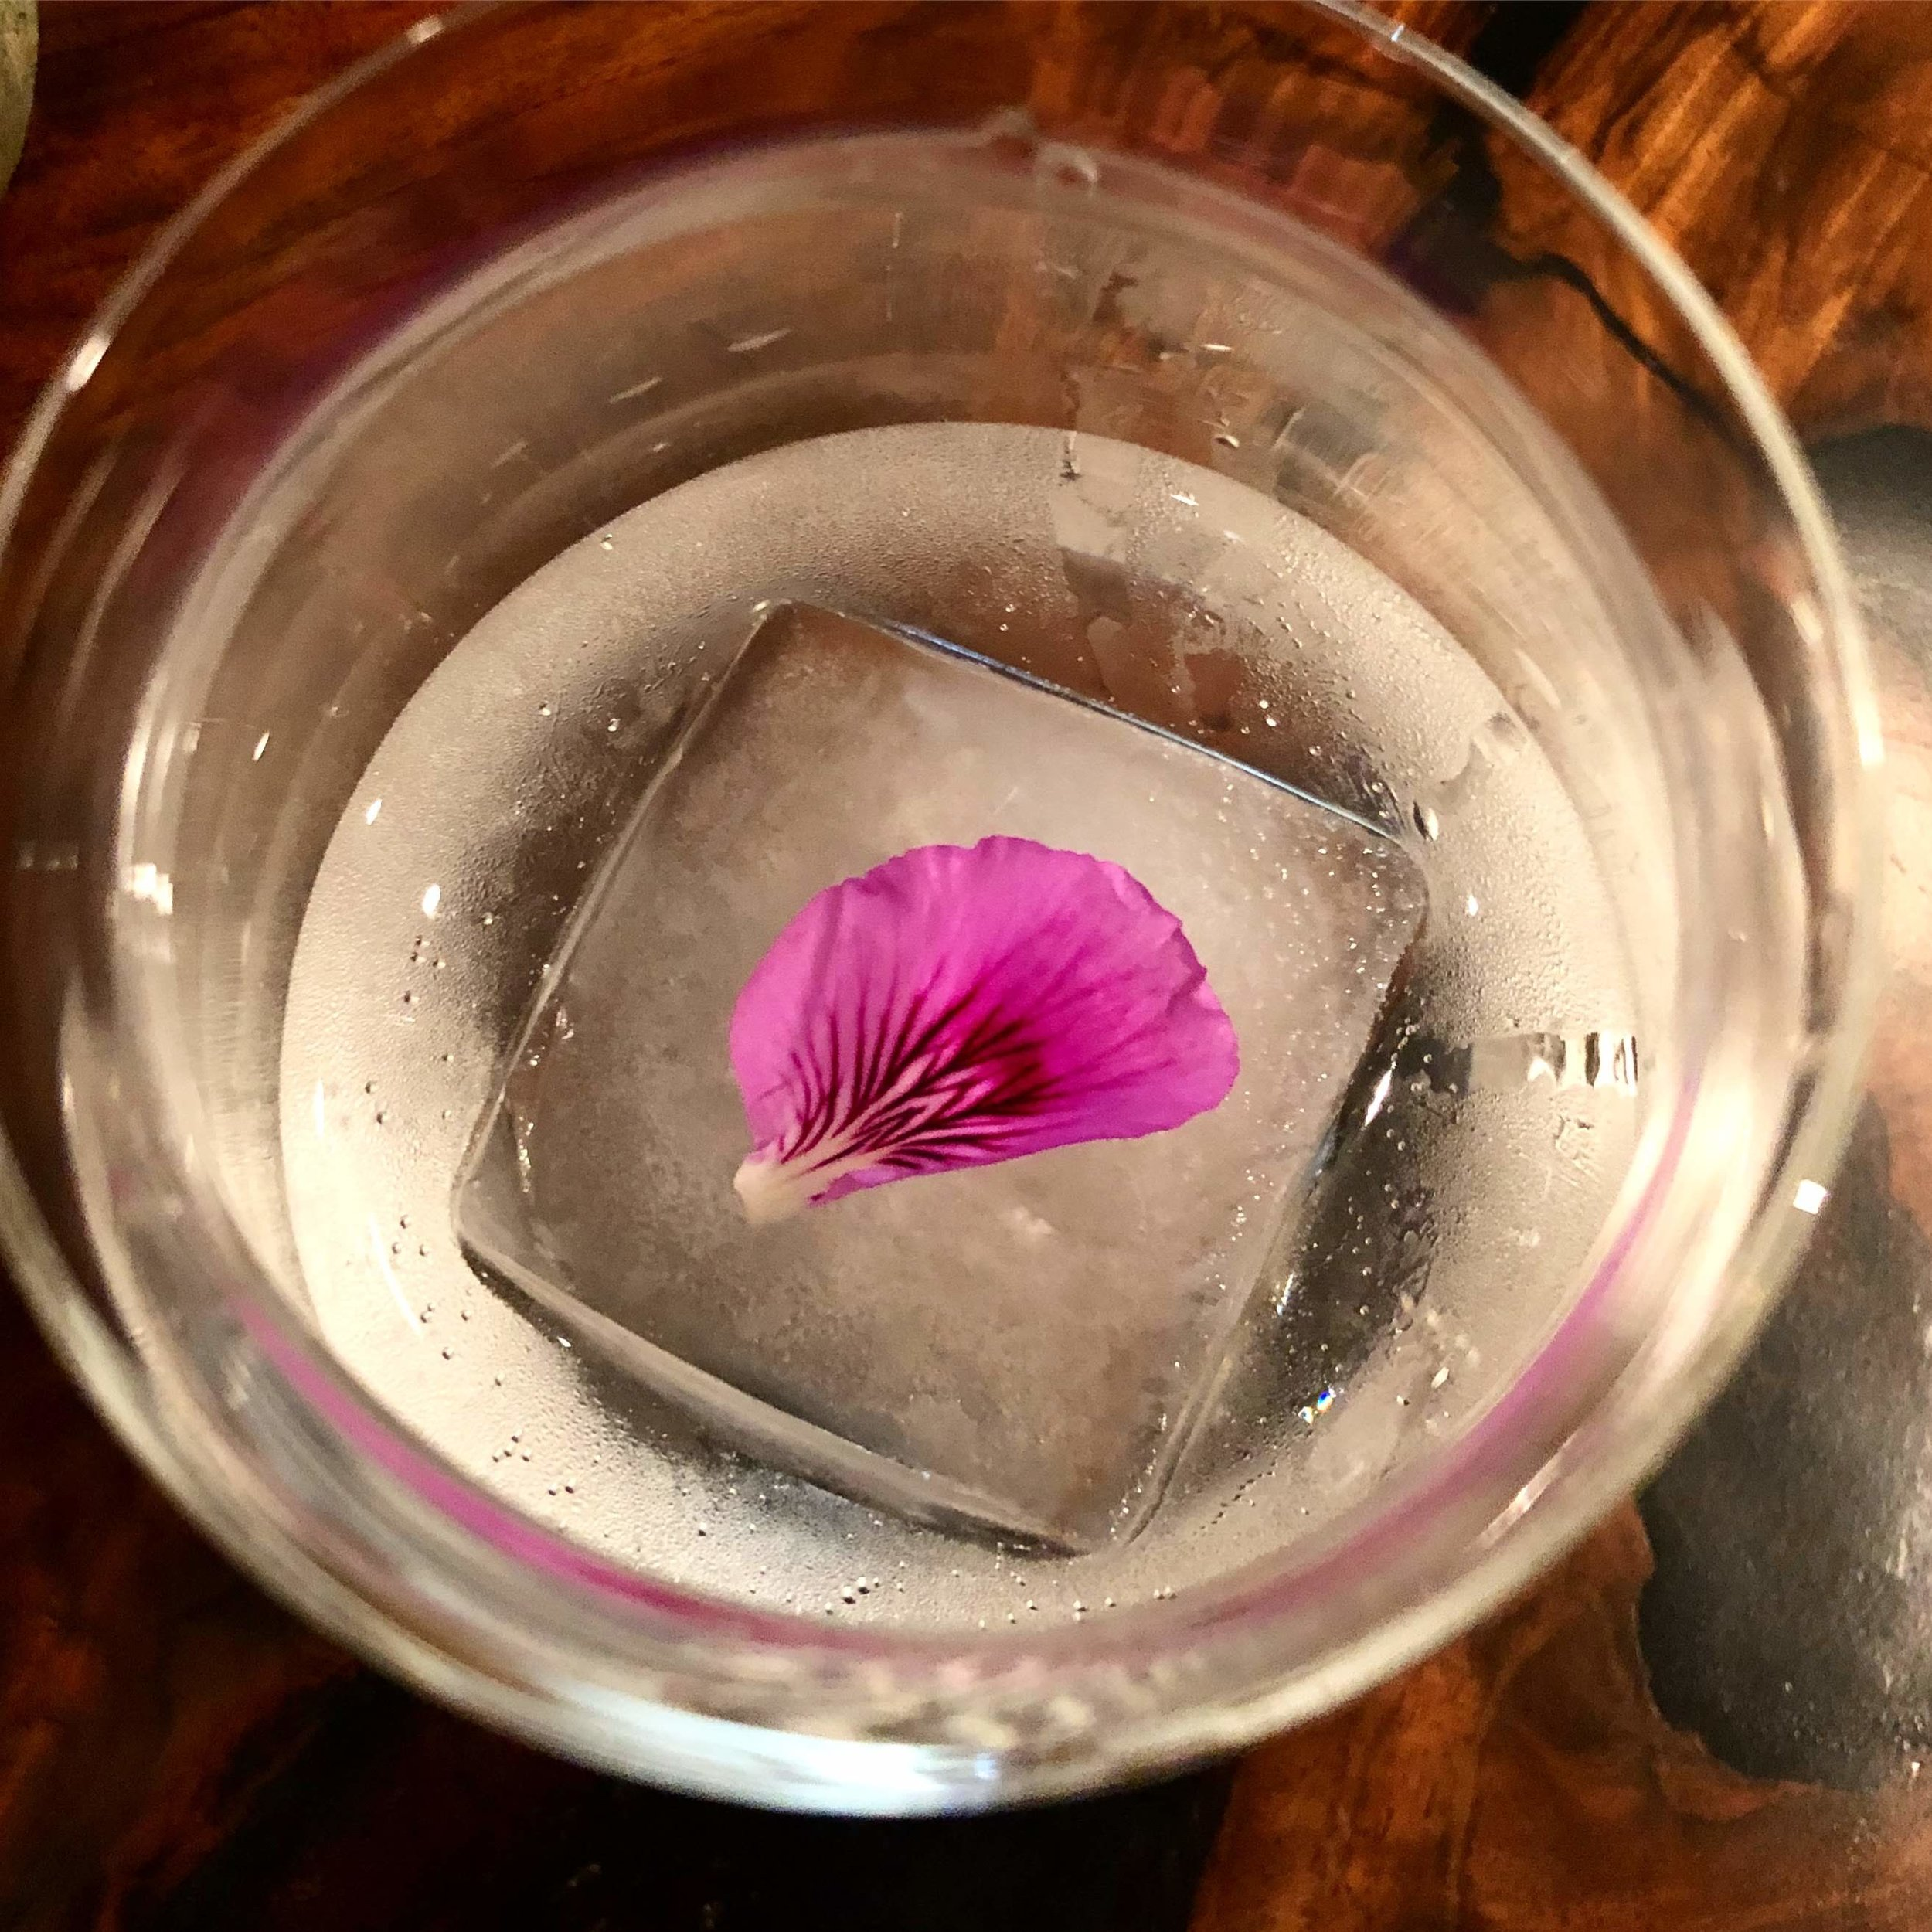 Non-Alcoholic Gin & Tonic - Tasted just like a real G & T. Seriously amazing. Stocked by the Seedlip brand.